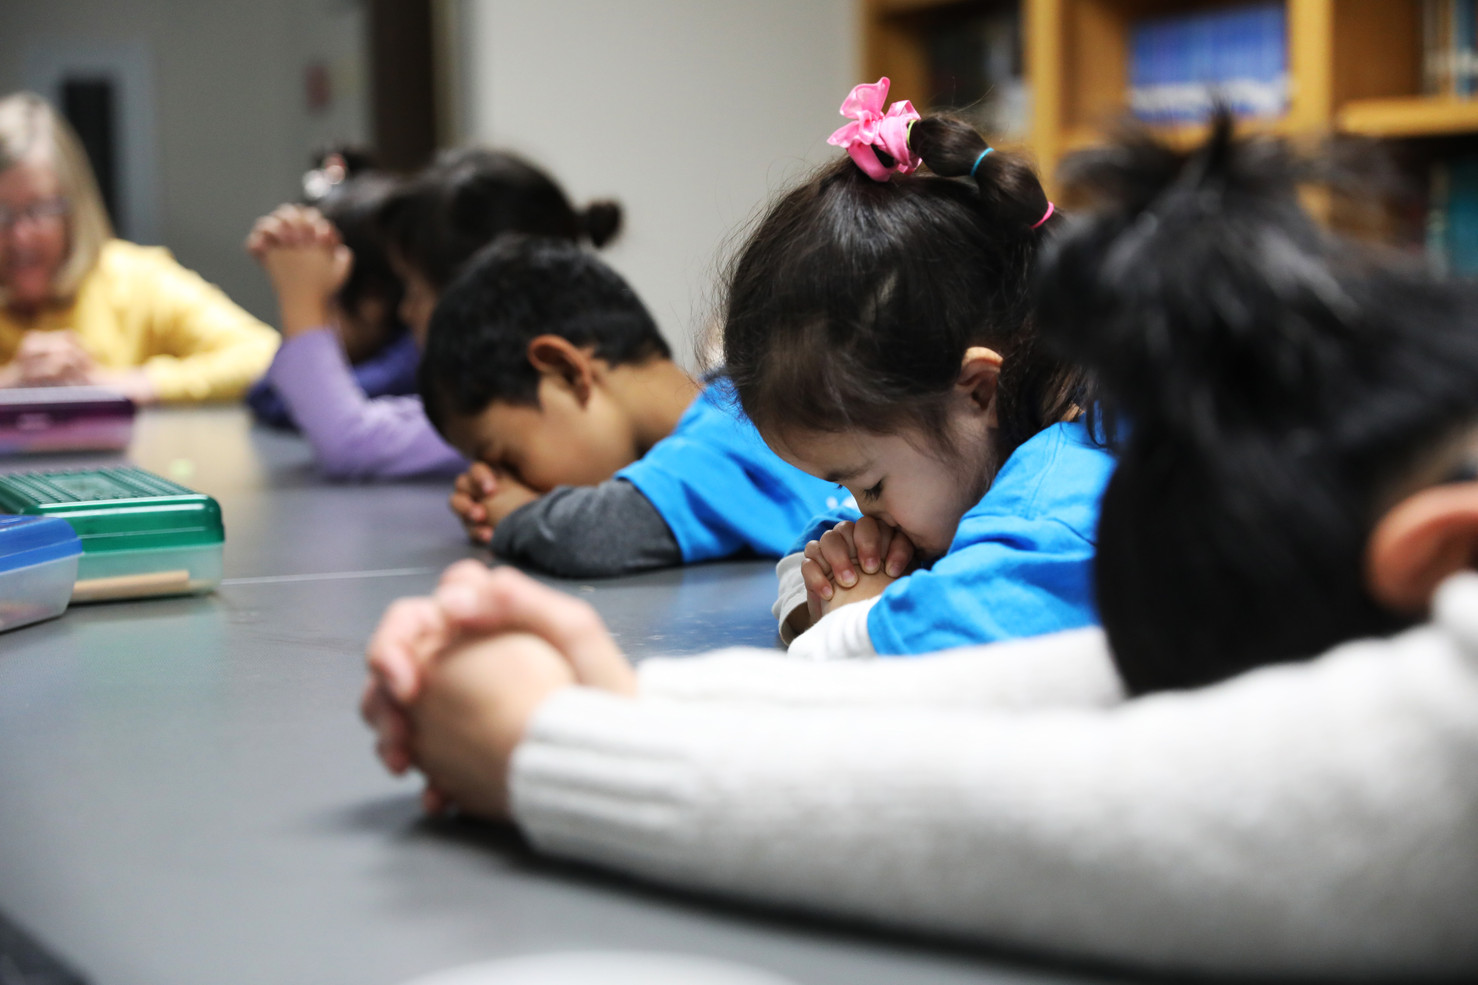 Arthur, Jane, and Yan pray before class in Children's Sunday School beginning on Sunday, November 17, 2019 in Children's Sunday School in International Community Church, Columbia, Missouri. In Children's Sunday School, children learn the Bible by singing religious songs, painting, and making with elements of religions.